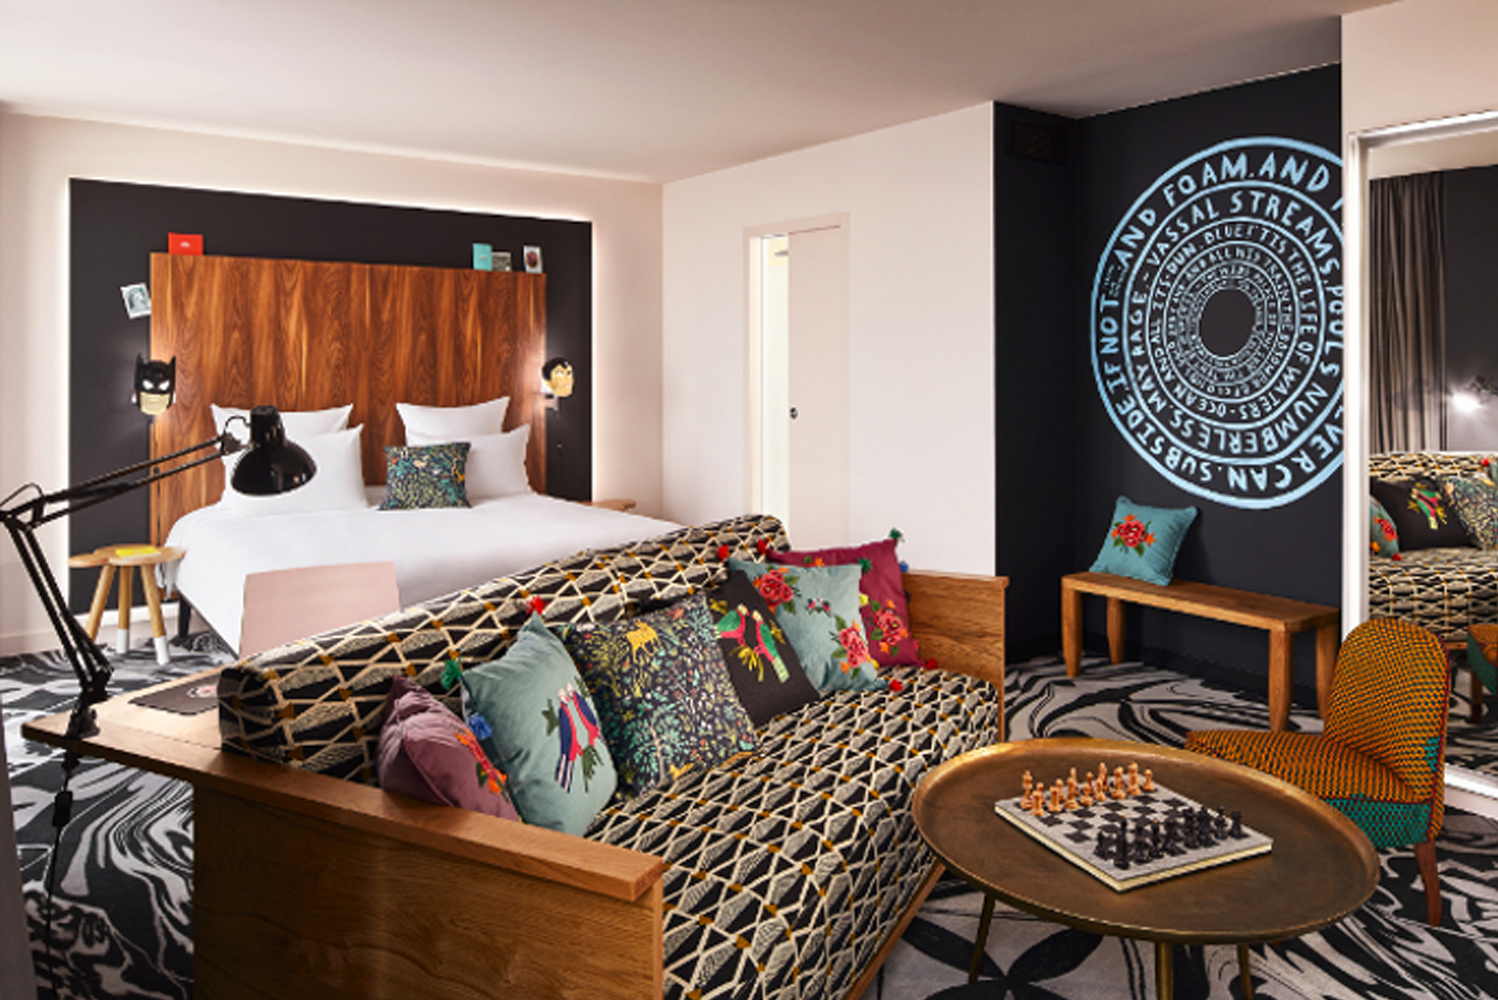 Designed by São Paulo-based designer Jalil Amor, Mama Shelter Belgrade has décor that pays tribute to the Serbian capital's Ottoman history.